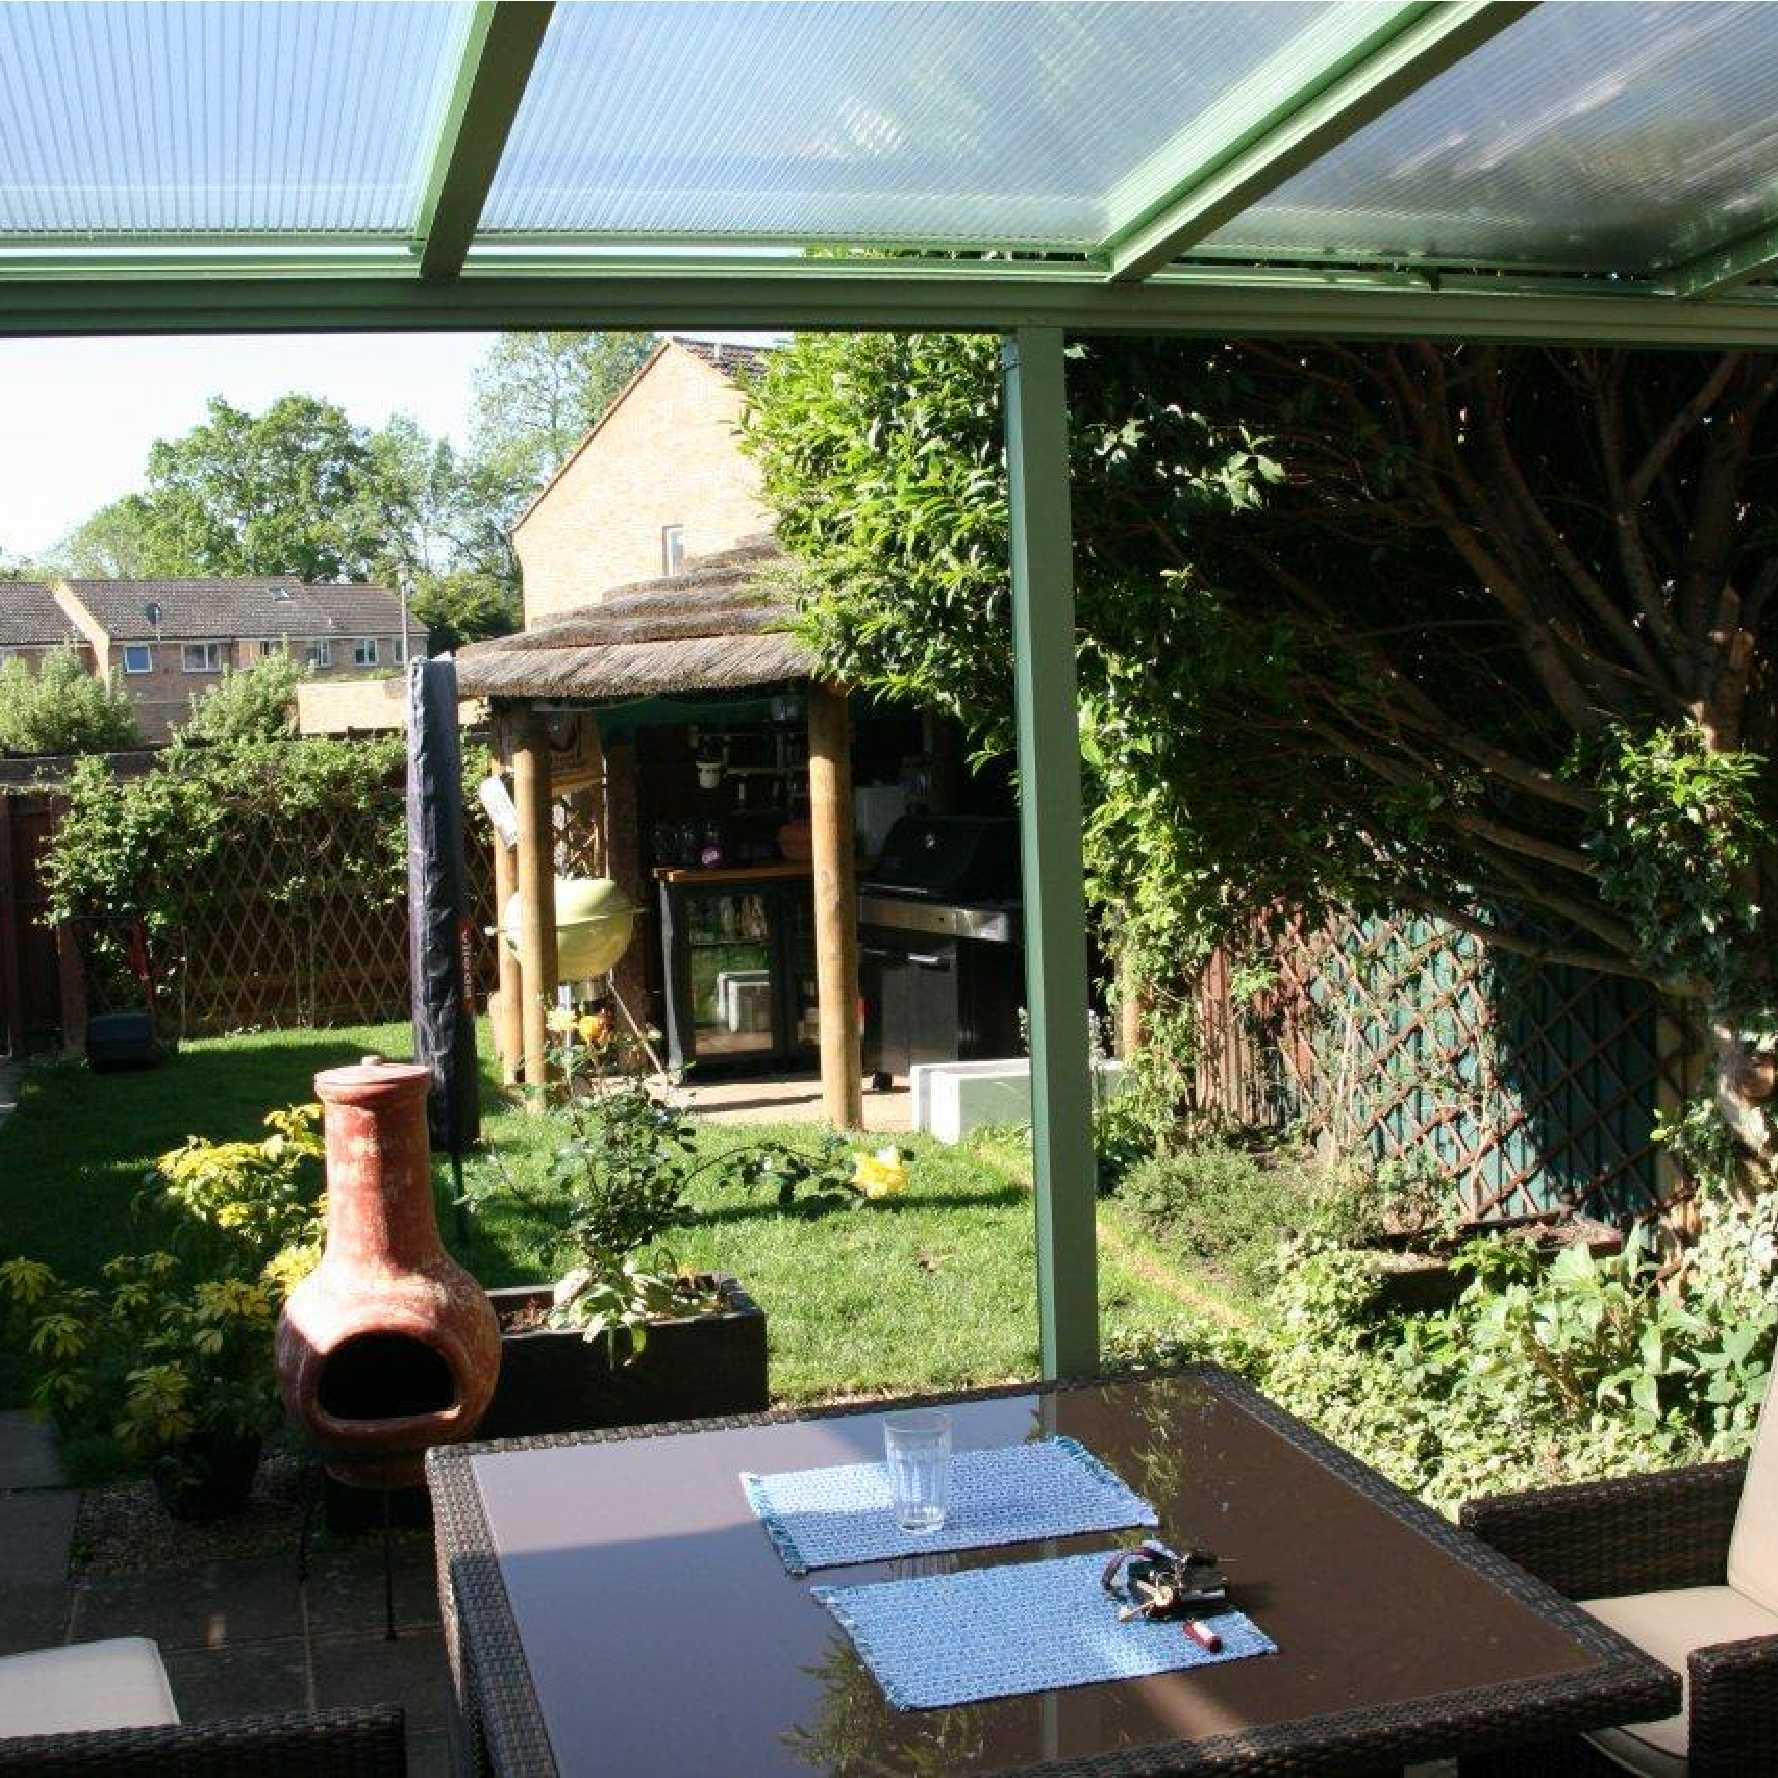 Affordable Omega Smart Lean-To Canopy with 16mm Polycarbonate Glazing - 7.0m (W) x 4.0m (P), (4) Supporting Posts